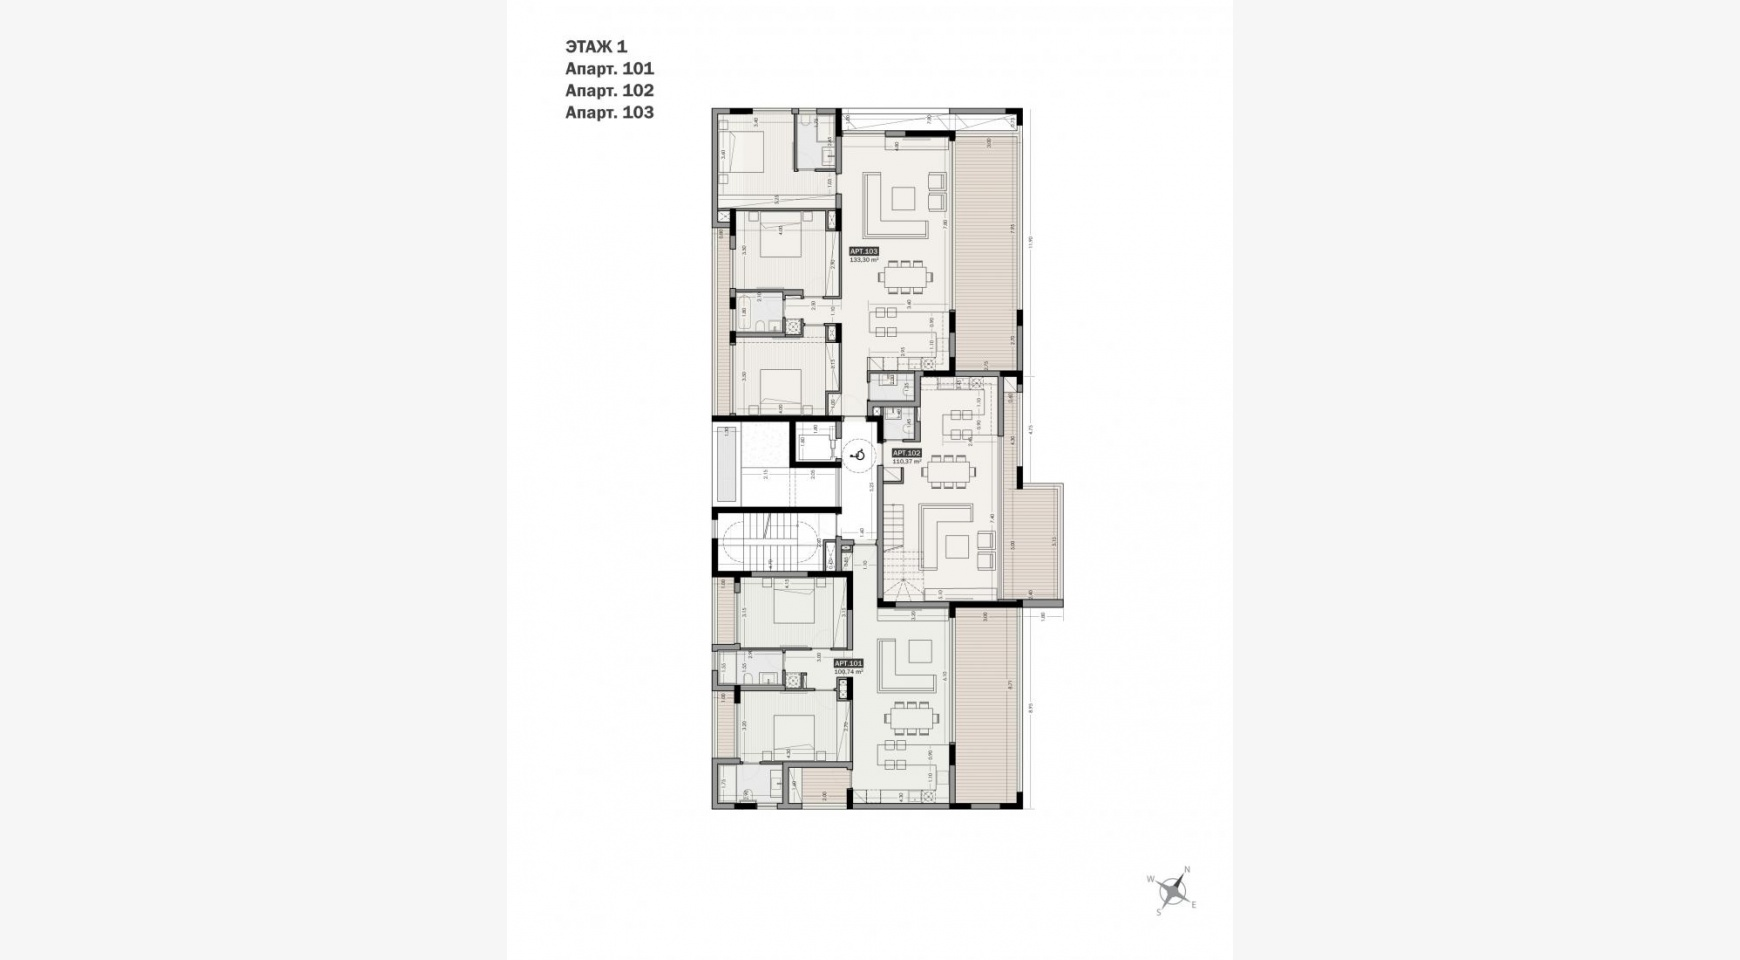 Parkside Residence. Spacious 3 Bedroom Apartment 103 in the Tourist Area  - 20